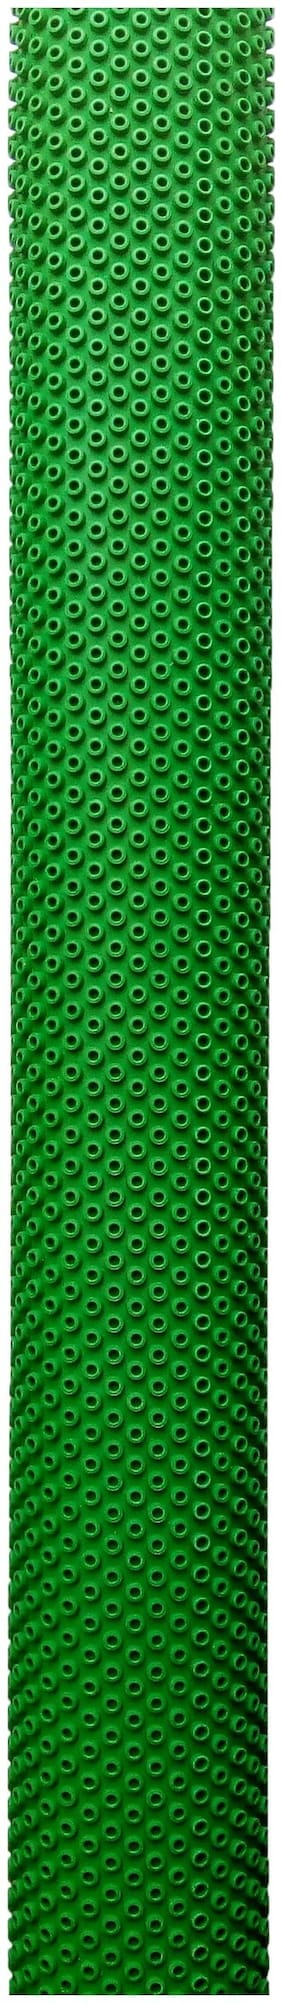 Gravity Octopus Grip for Cricket Bat, Green, Pack of 1